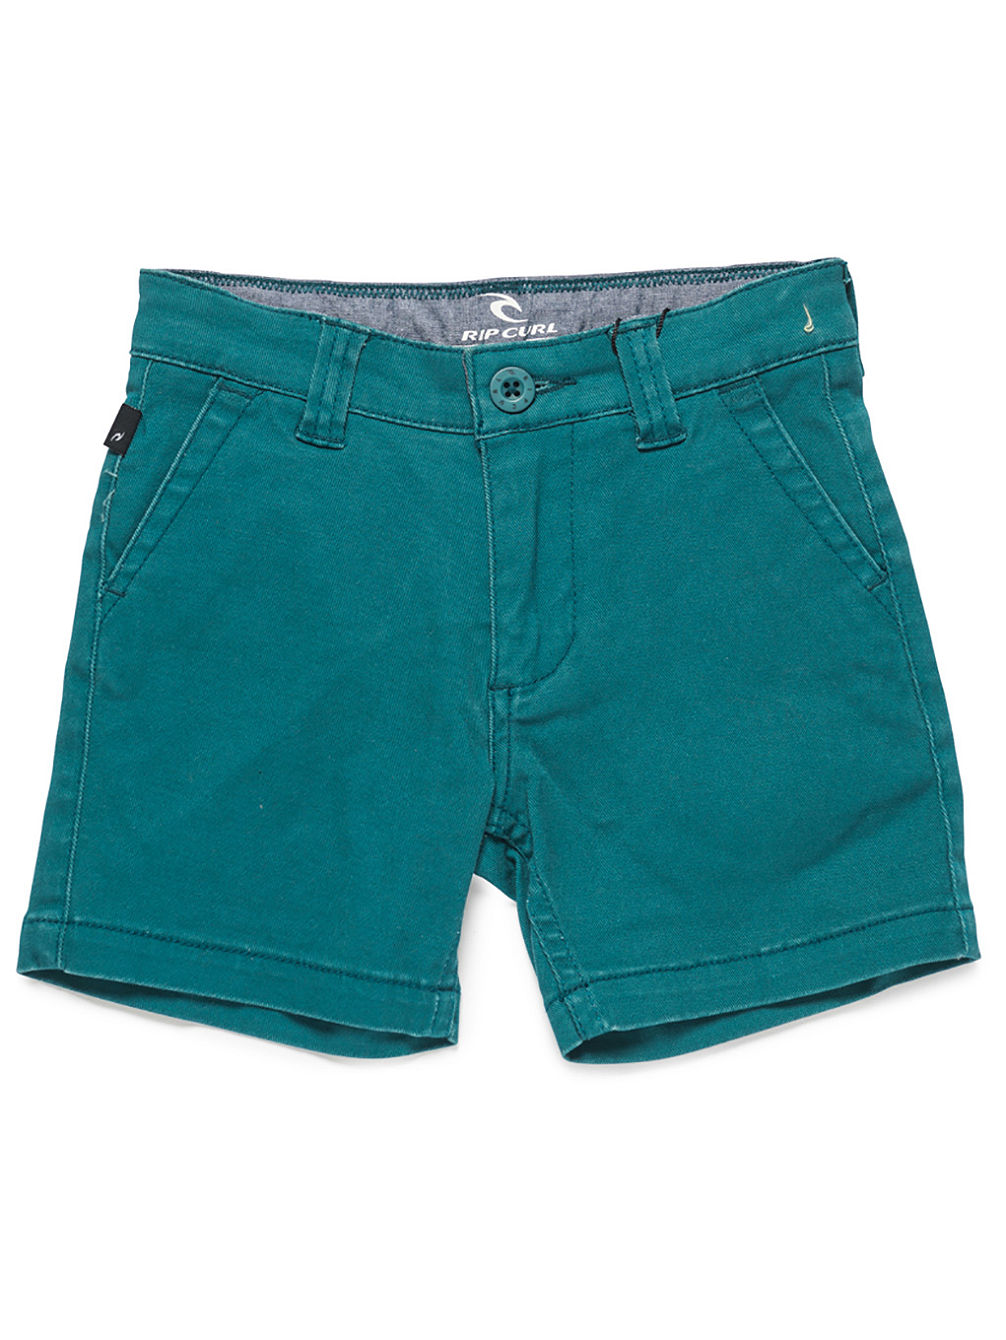 FREE SHIPPING AVAILABLE! Shop softhome24.ml and save on Boys Shorts & Capris.